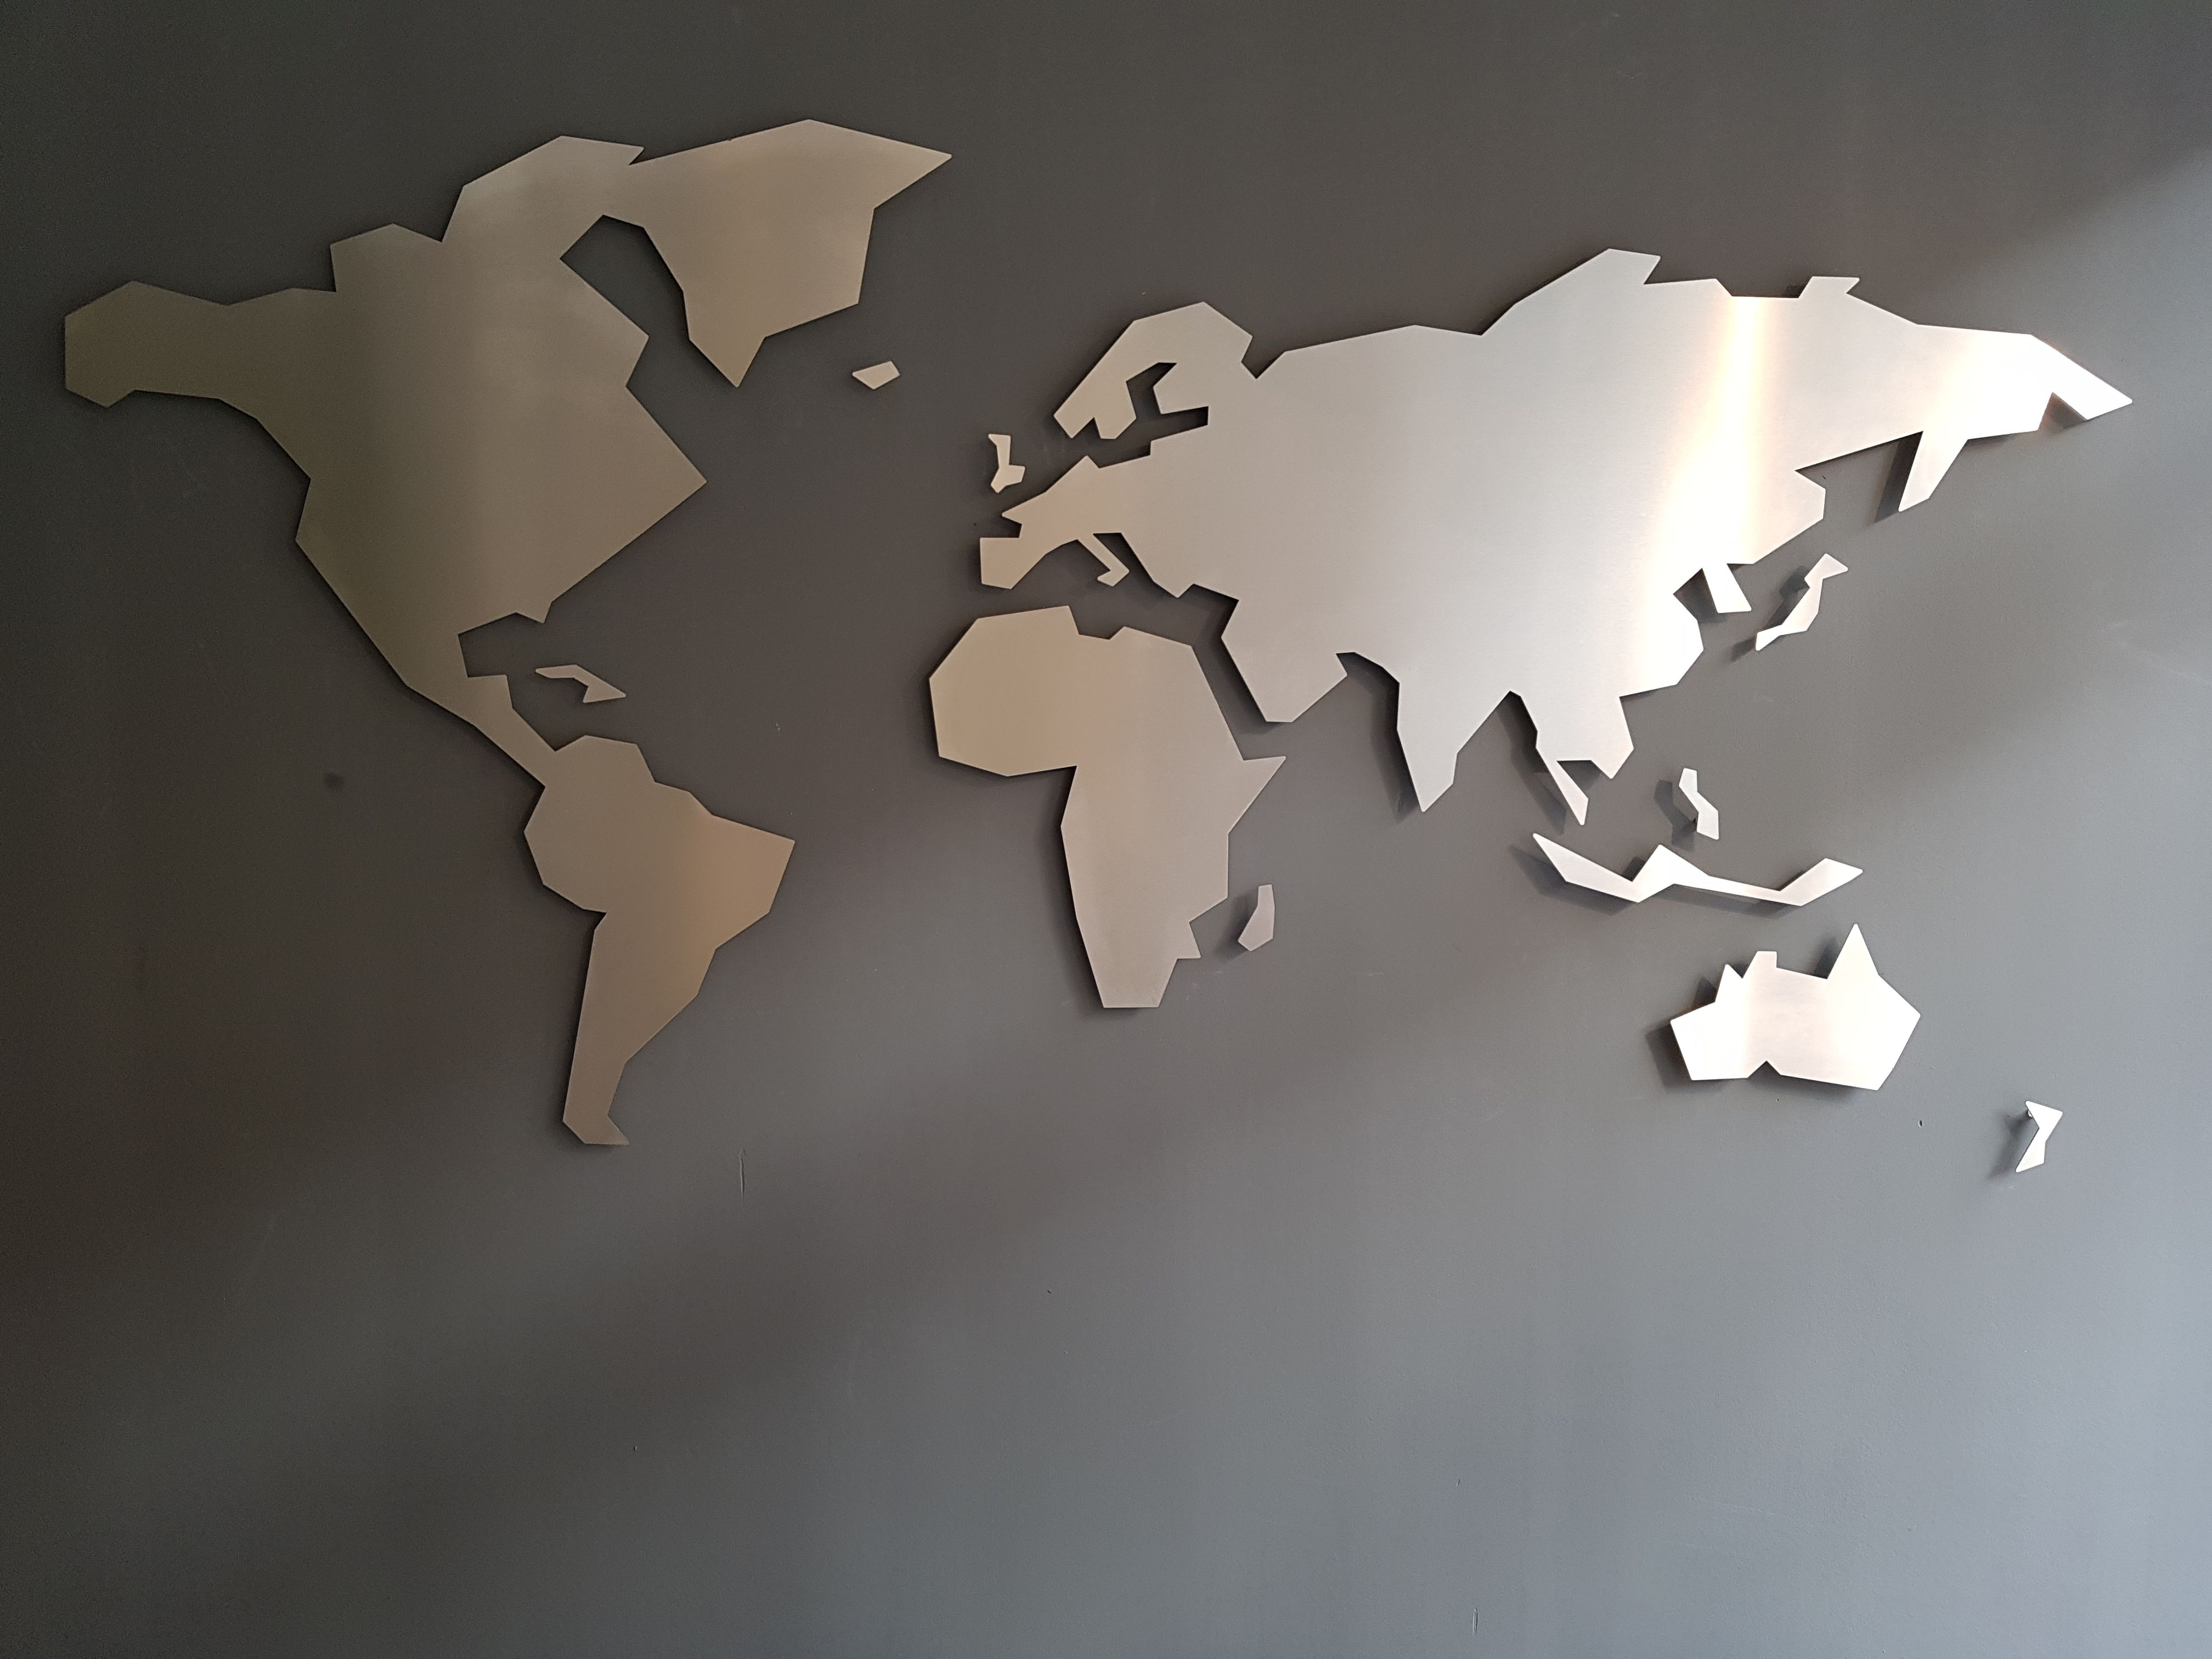 Where Is Holland On The World Map